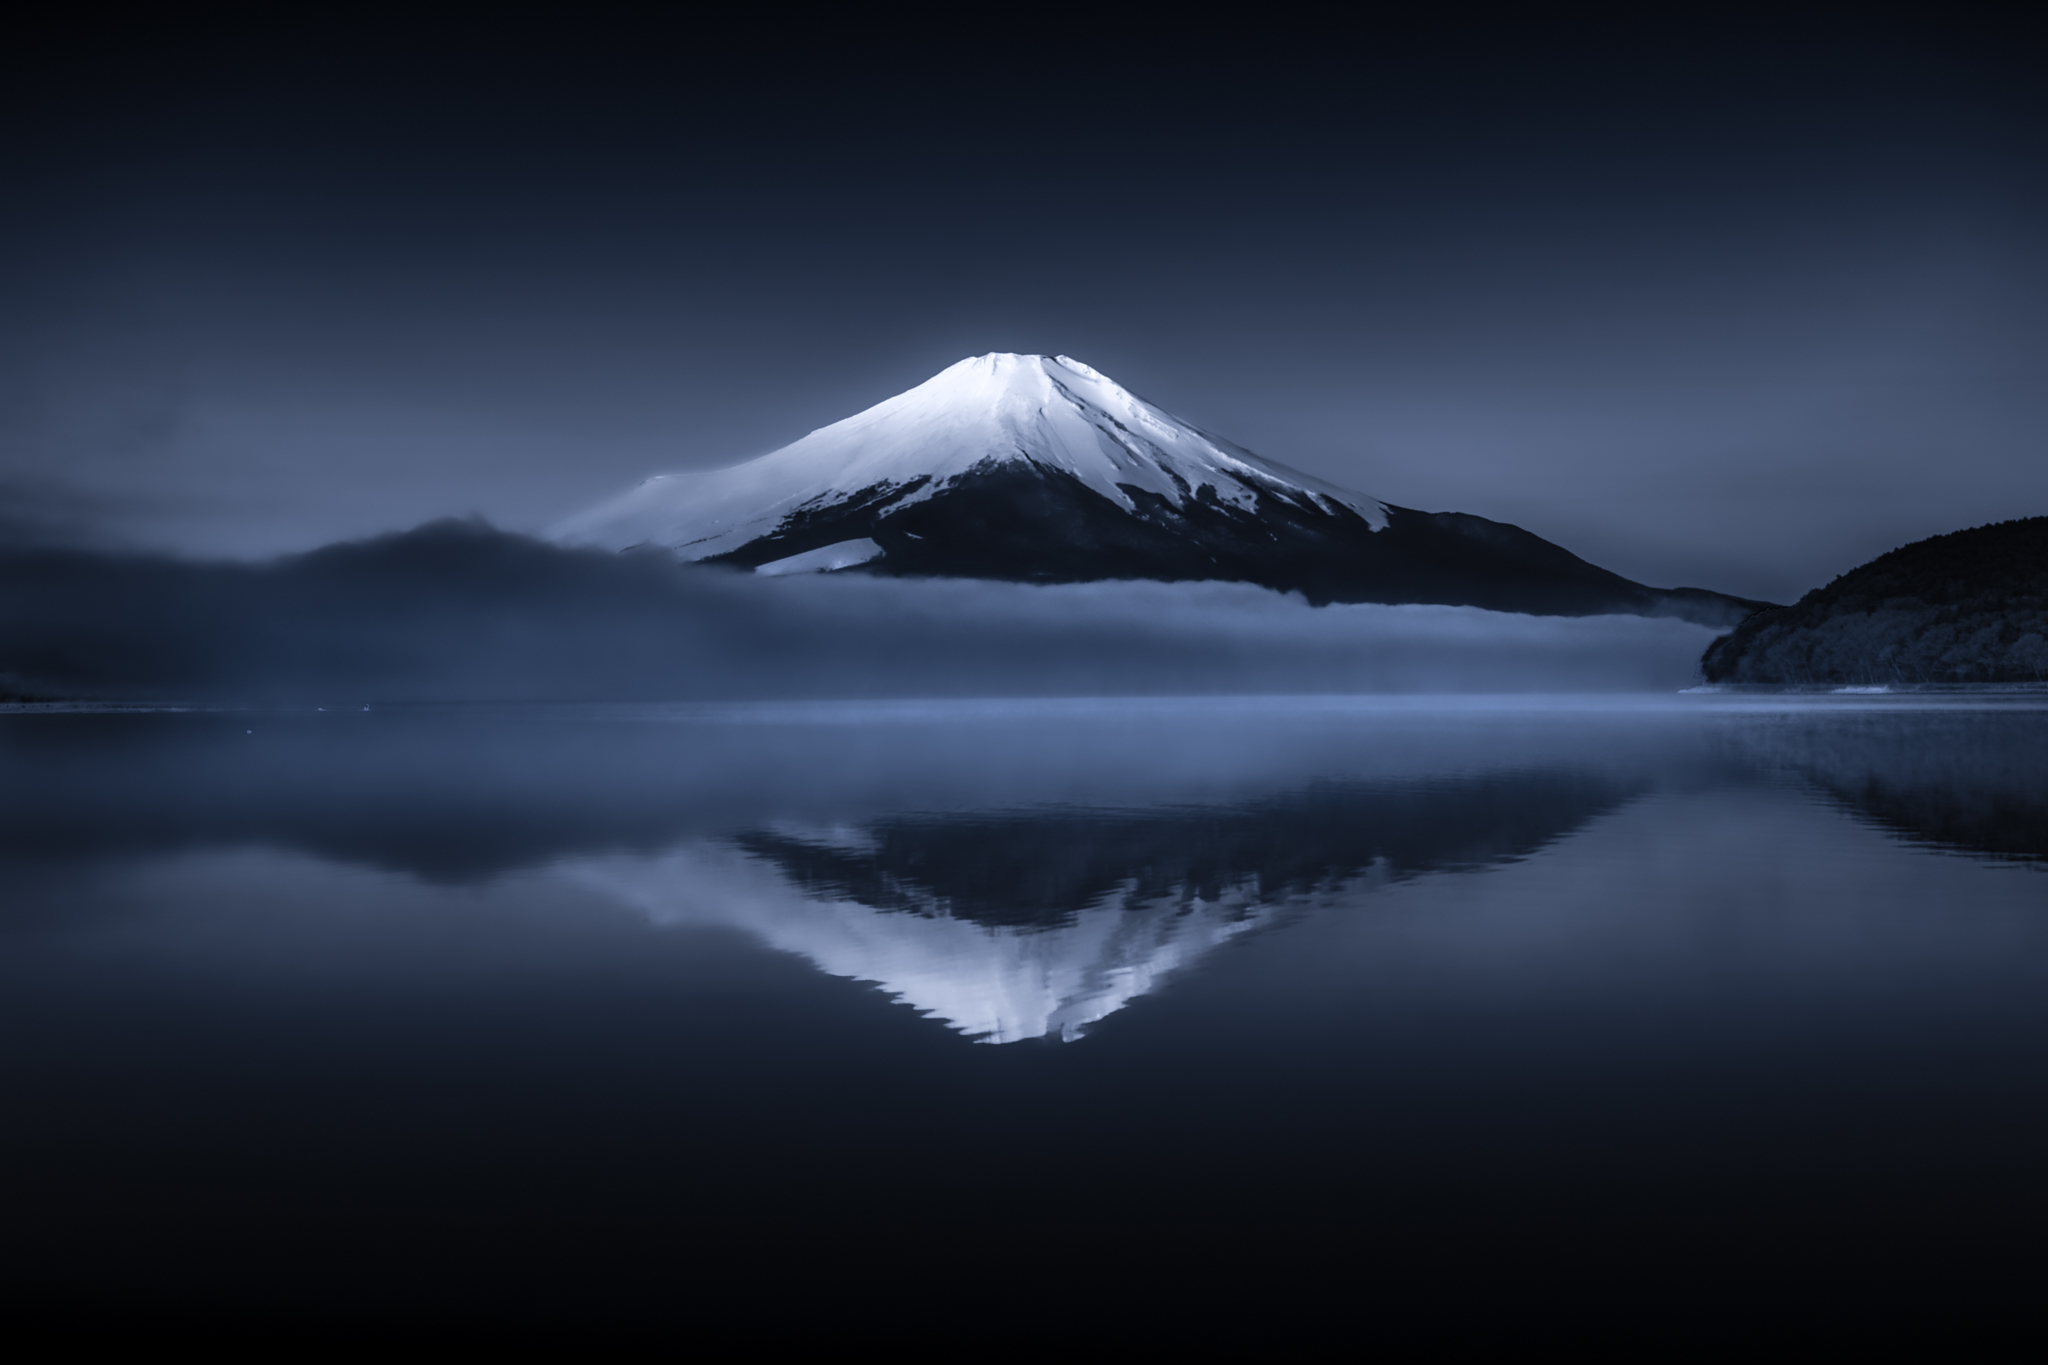 Mount Fuji Reflection Wallpaper Hd Nature 4k Wallpapers